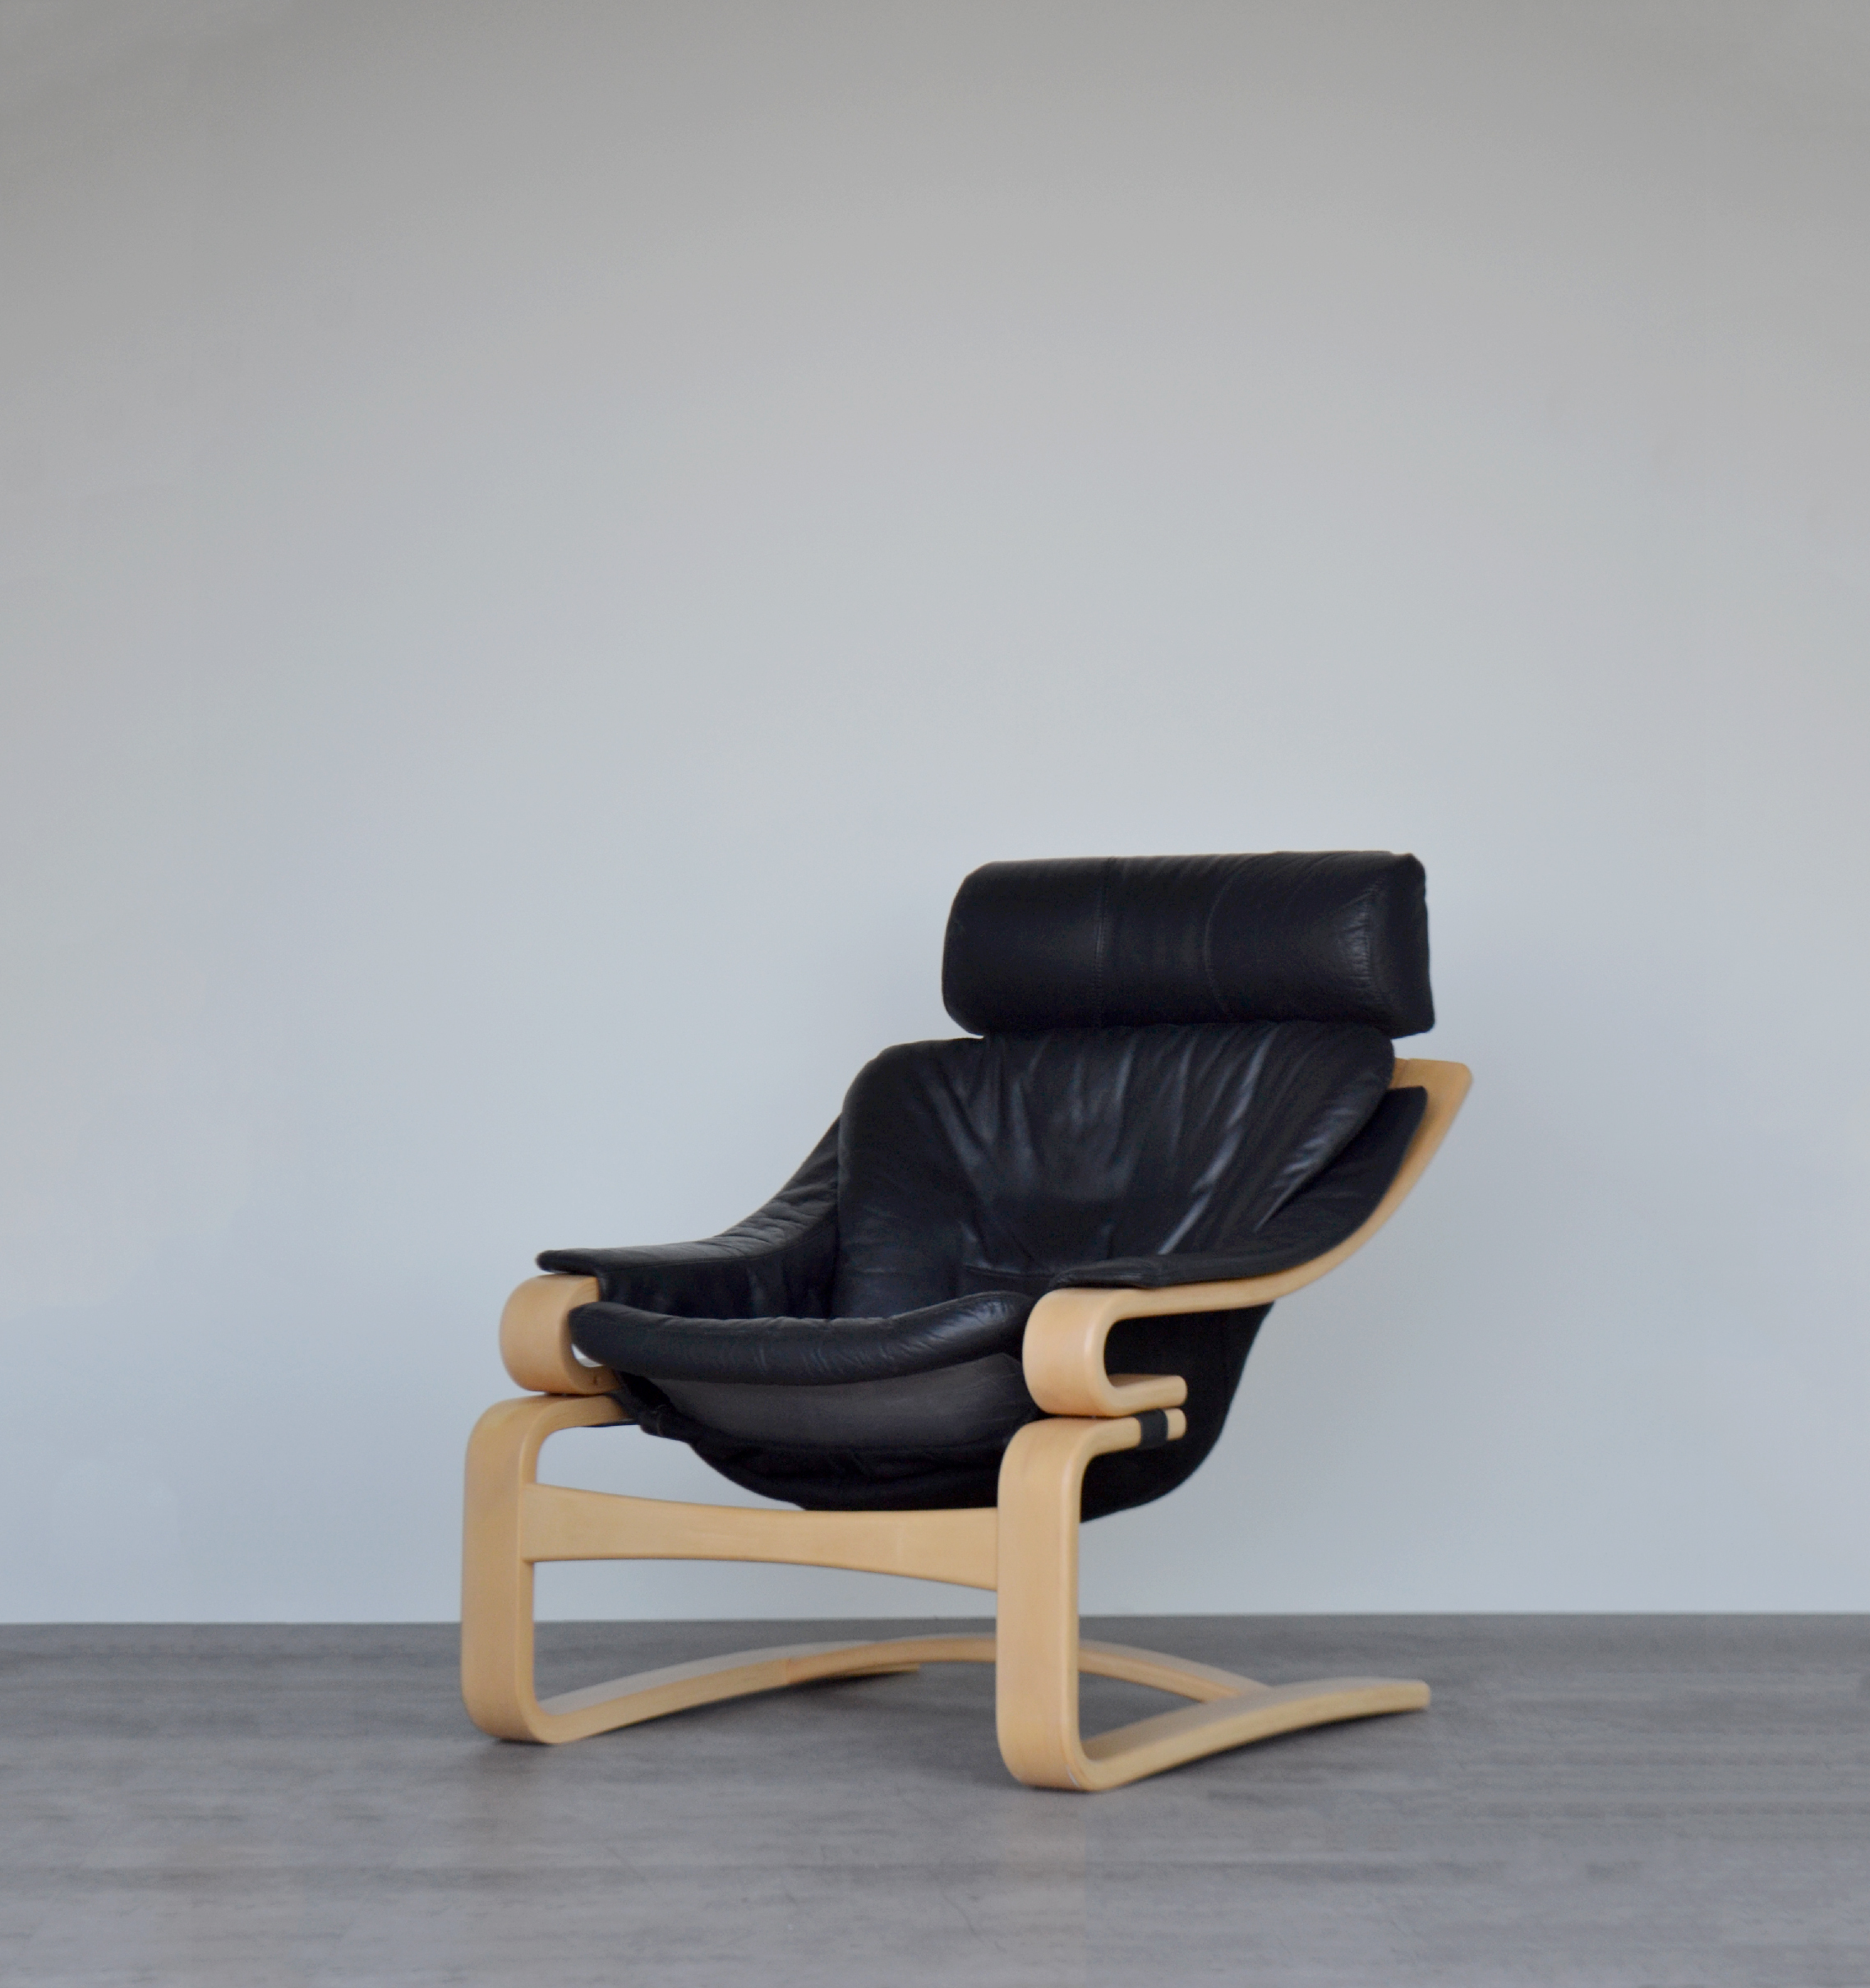 Rare Vintage Mid Century Danish Bentwood Black Leather And Beech Apollo Chair Armchair Lounge Chair By Svend Skipper For Skippers Mobler Skipper Vinterior